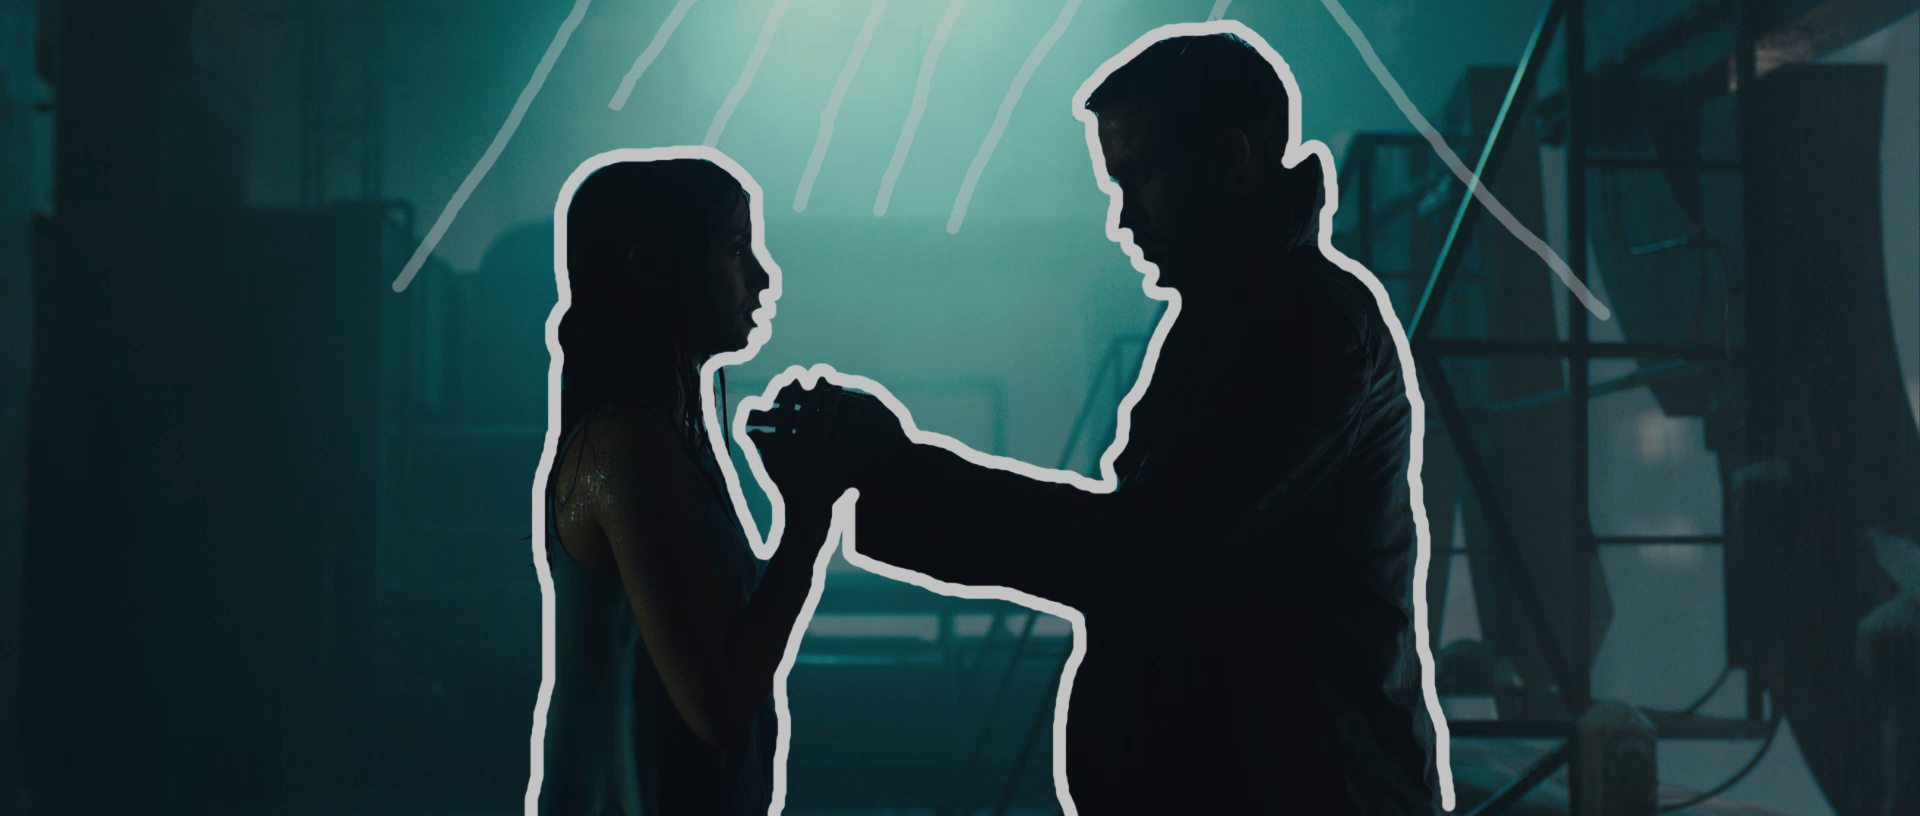 BD2049_silhouette_case_2.png